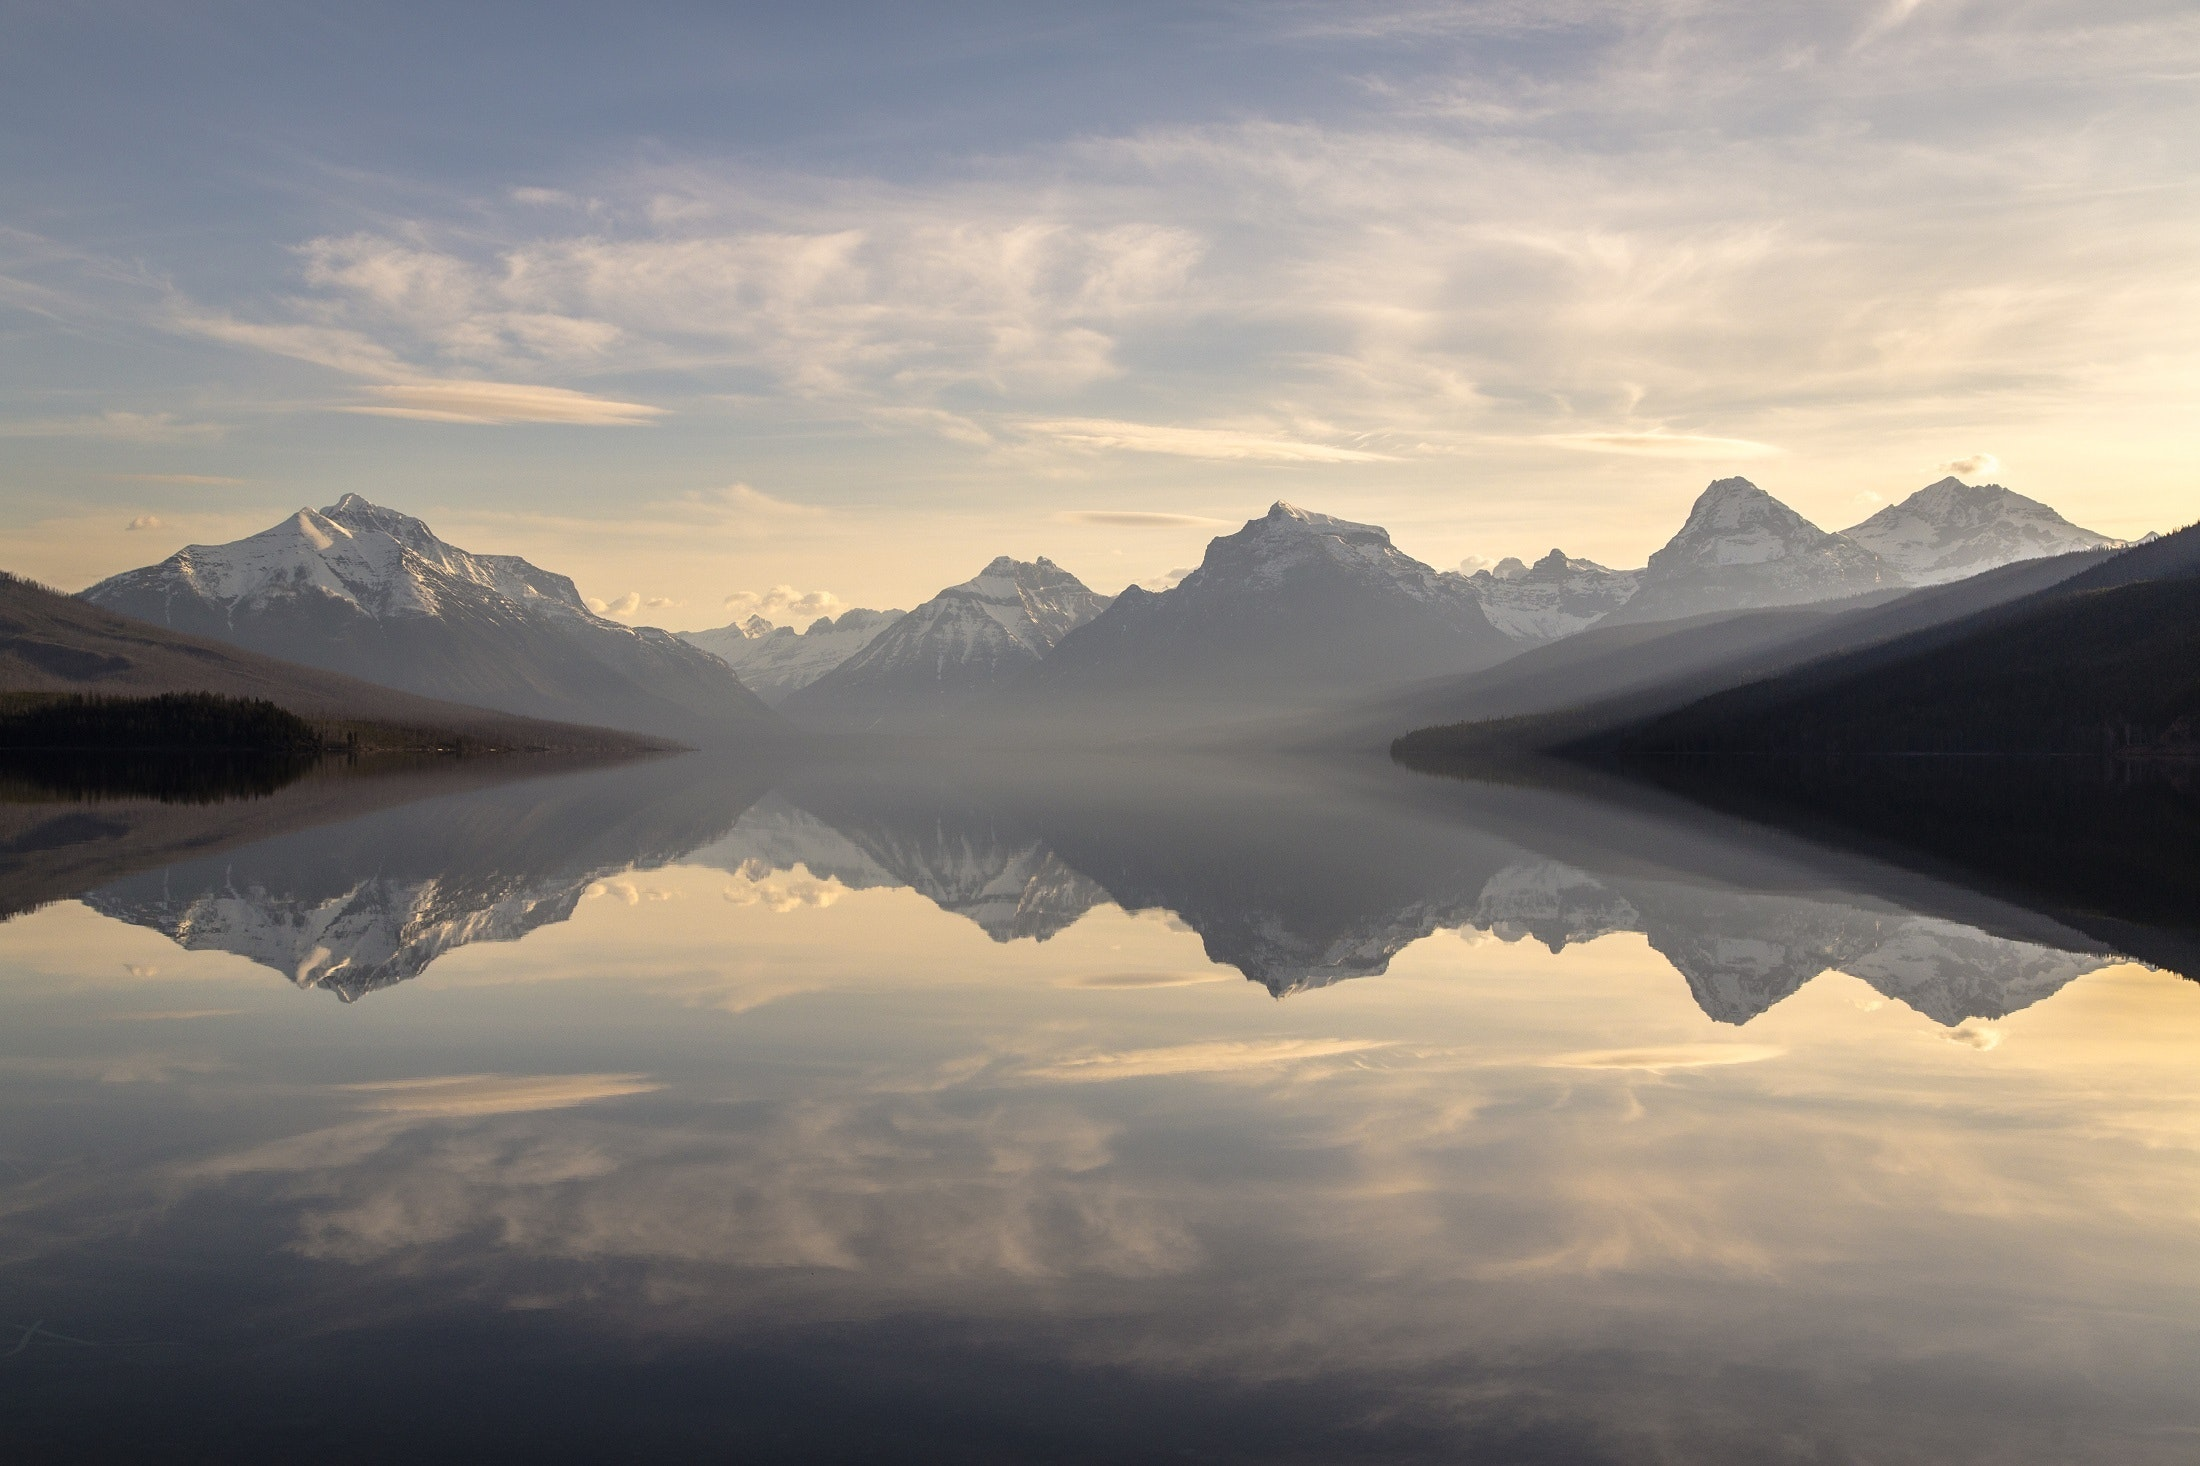 Clouds and mountains reflected in a calm lake